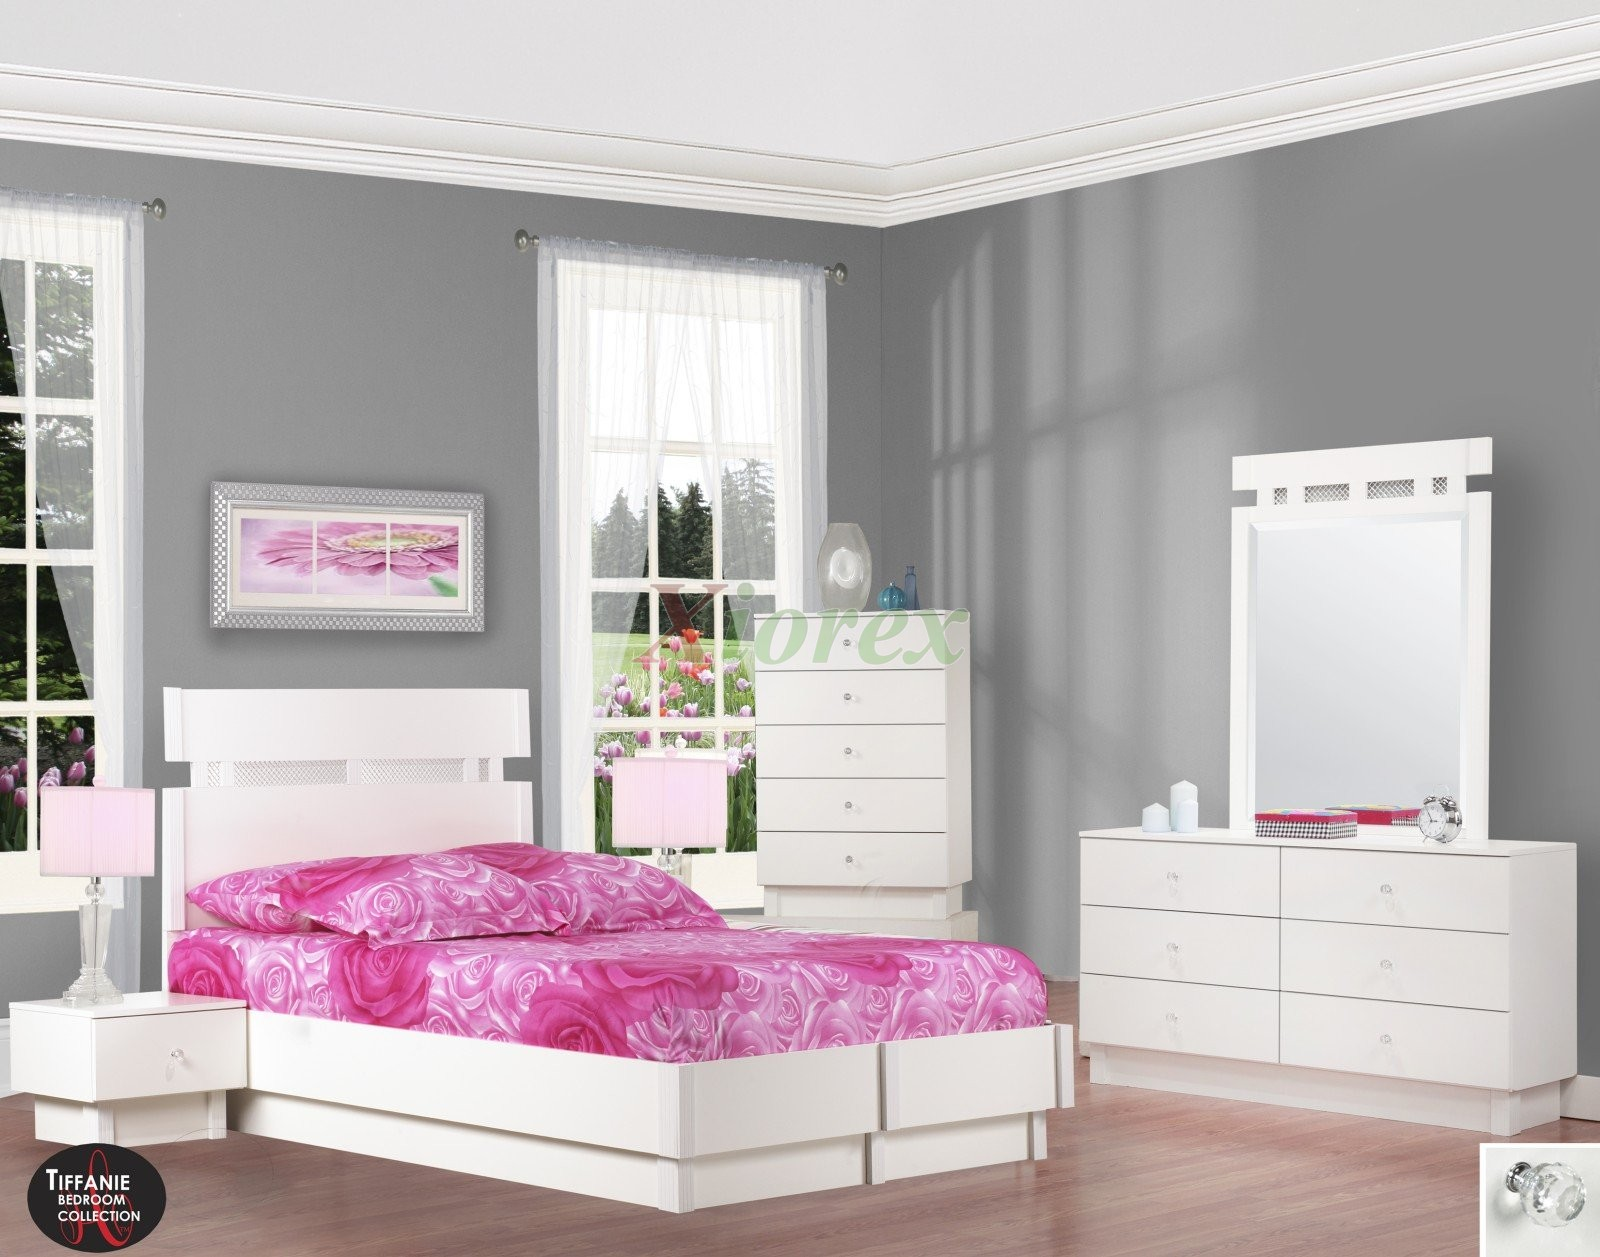 Platform Bed Sets Life Line Tiffanie Twin Full Queen Bed